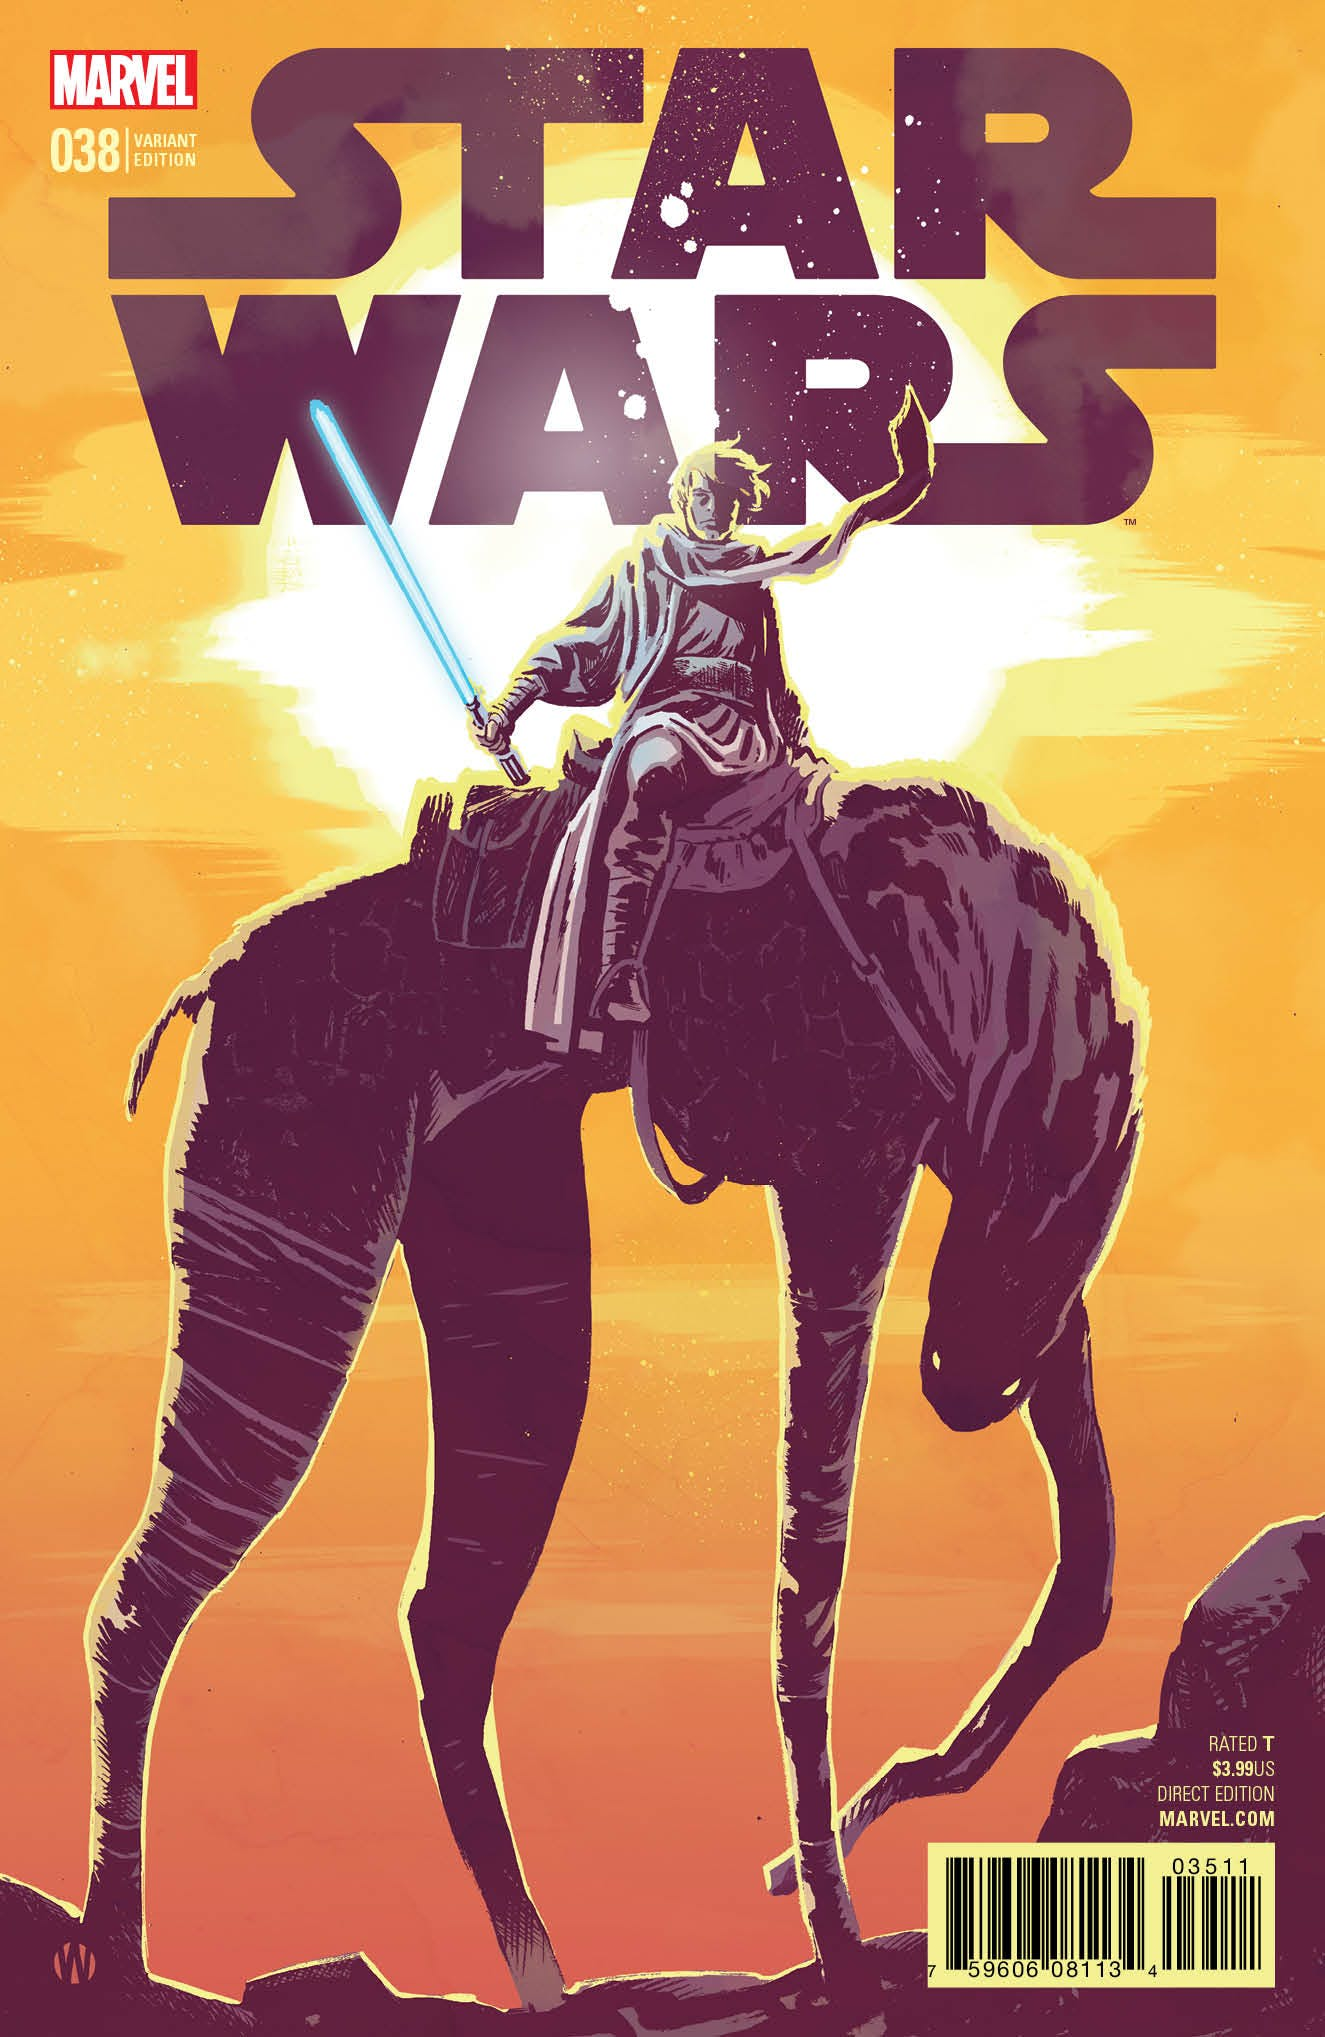 Star Wars #38 (Michael Walsh Variant Cover) (08.11.2017)